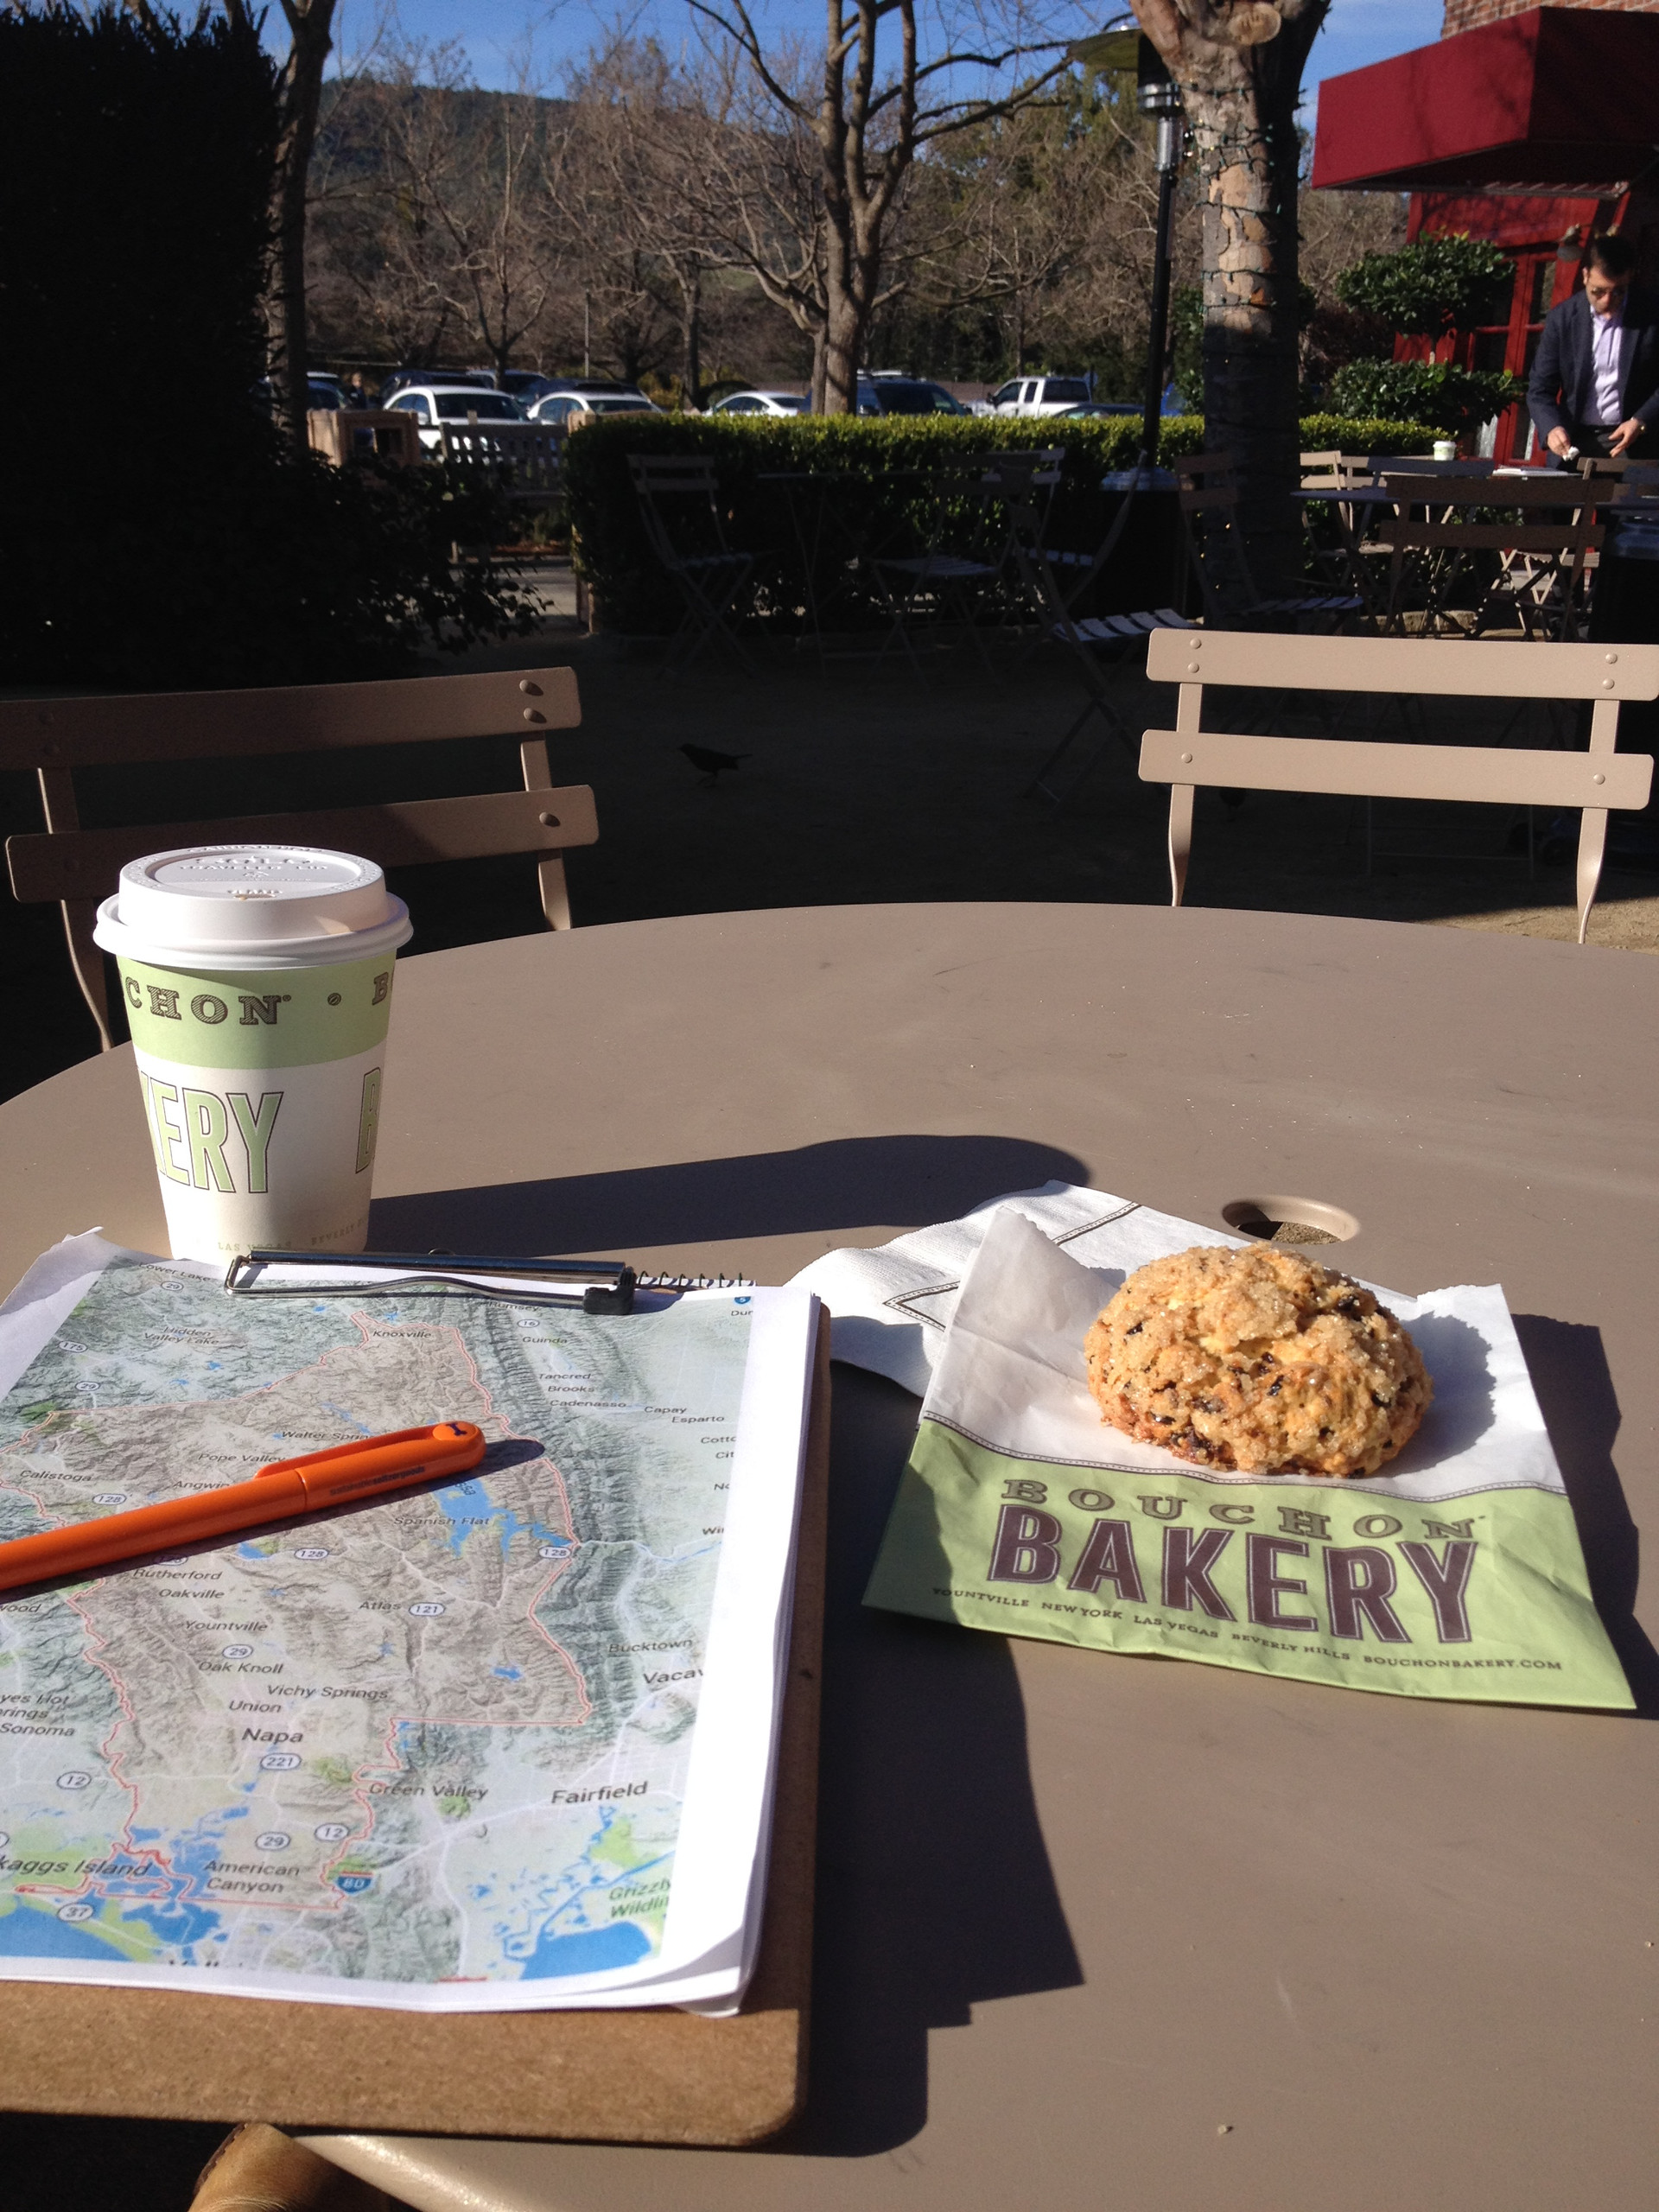 Beginning my day planning at Bouchon Bakery